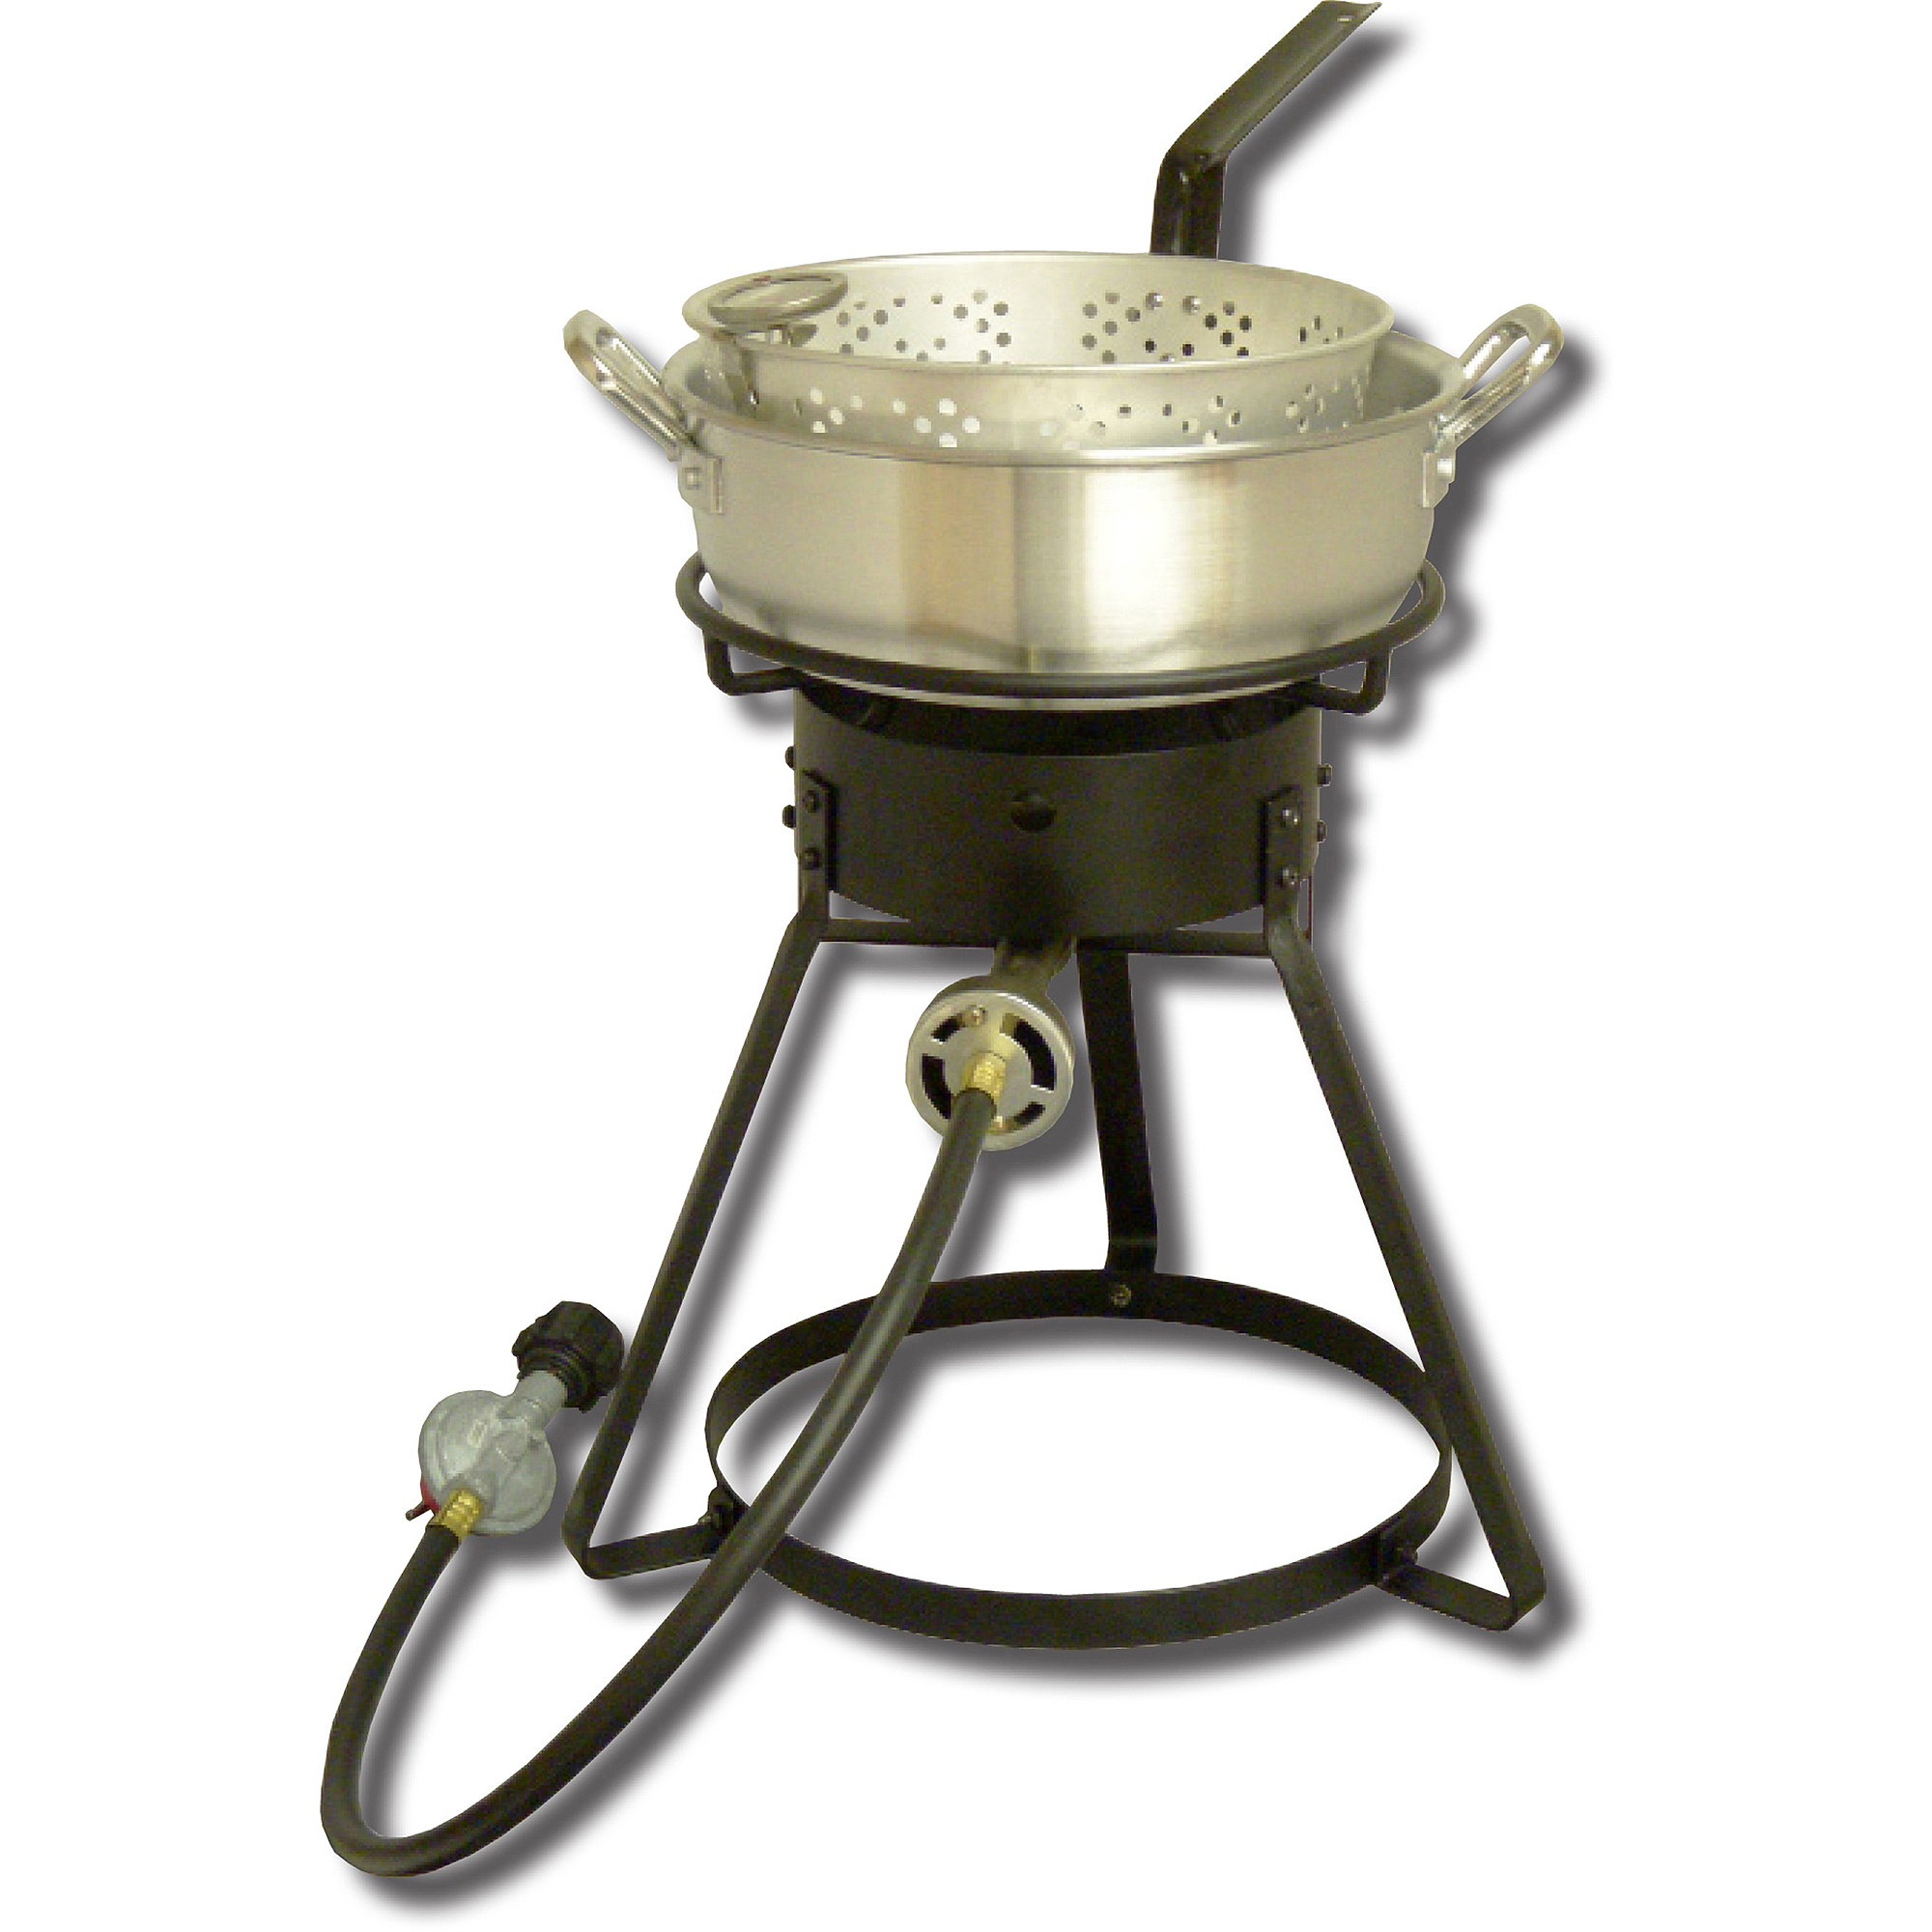 """King Kooker 16"""" Bolt-Together Propane Outdoor Cooker Package with Aluminum Fry Pan and Basket by Metal Fusion, Inc."""